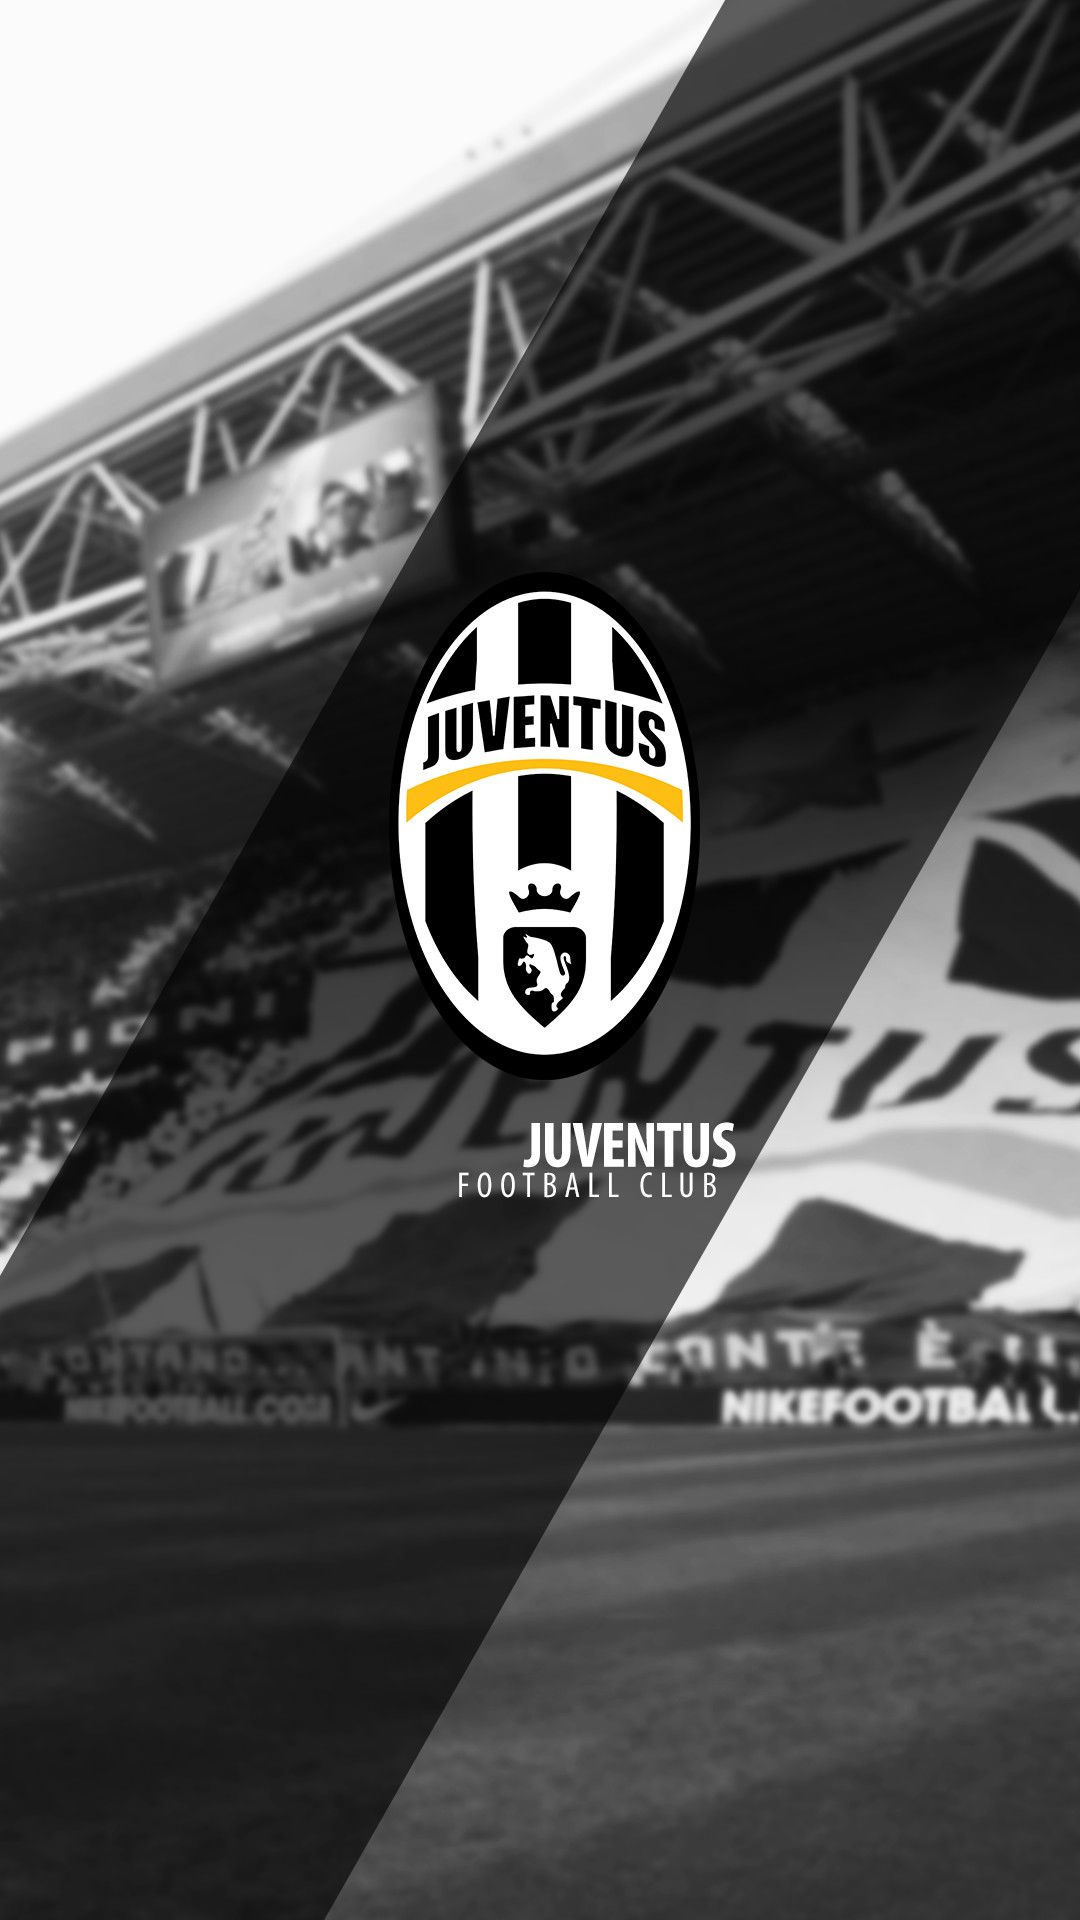 Juventus 4k Android Wallpapers - Wallpaper Cave